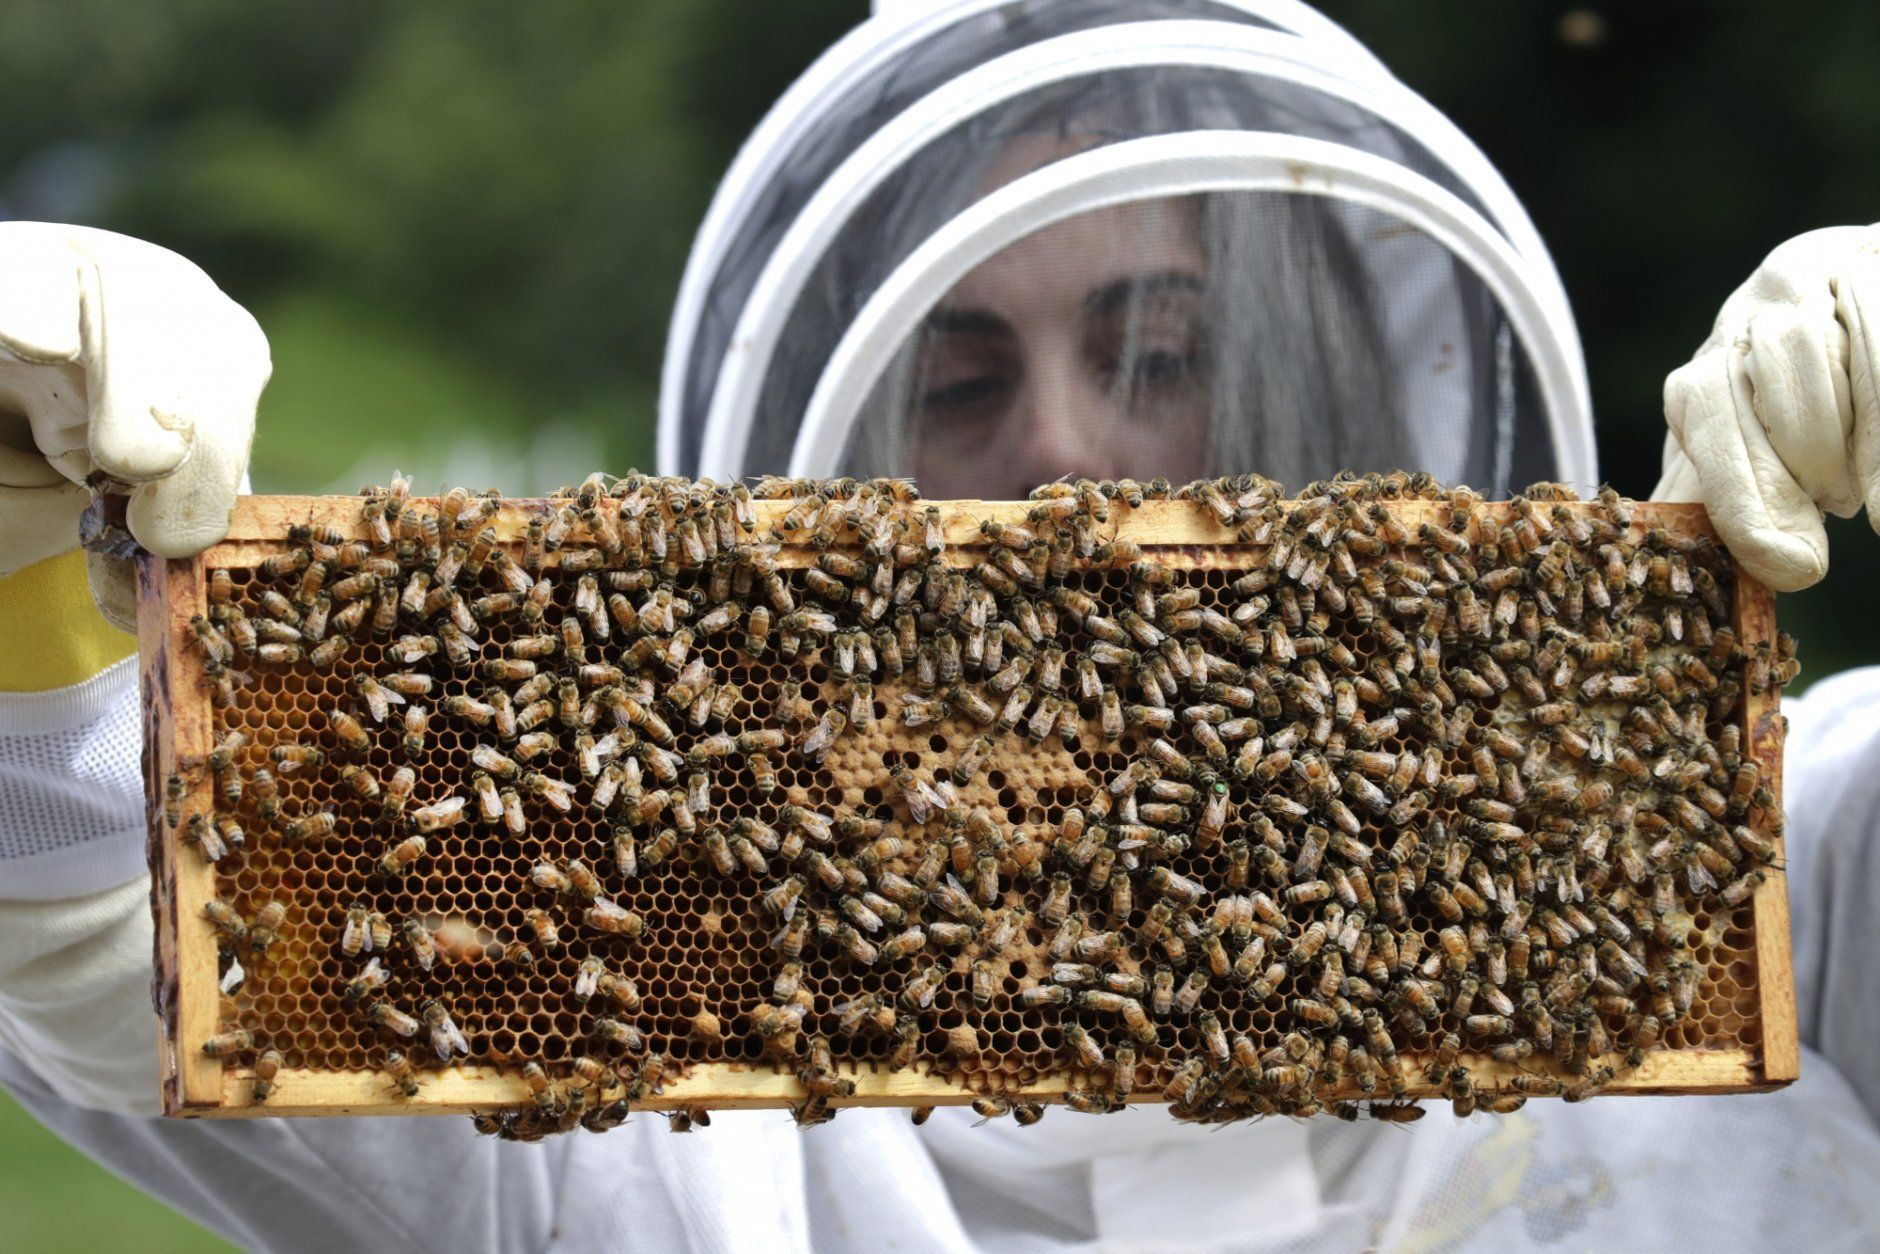 <p>In this Aug. 7, 2019 photo, U.S. Army veteran Wendi Zimmermann transfers a frame of bees to a new box, while checking them for disease and food supply at the Veterans Affairs&#8217; beehives in Manchester, N.H. Veterans Affairs has begun offering beekeeping at a few facilities including in New Hampshire and Michigan, and researchers are starting to study whether the practice has therapeutic benefits. (AP Photo/Elise Amendola)</p>